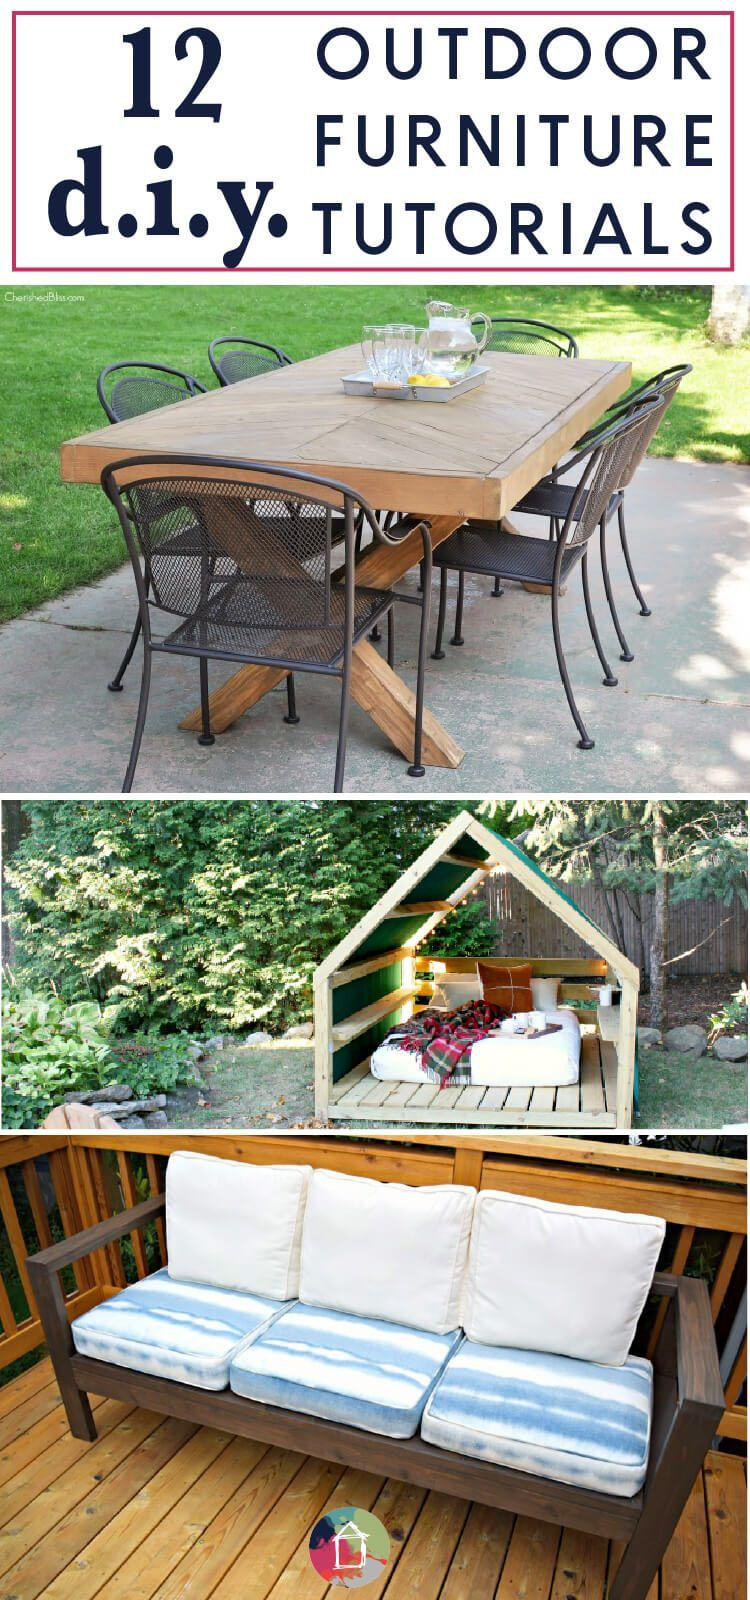 Outdoor Furniture Can Be So Expensive, But These DIY Outdoor Furniture  Projects Are High On Style And Easy On Your Wallet! If You Are Looking For  Outdoor ...